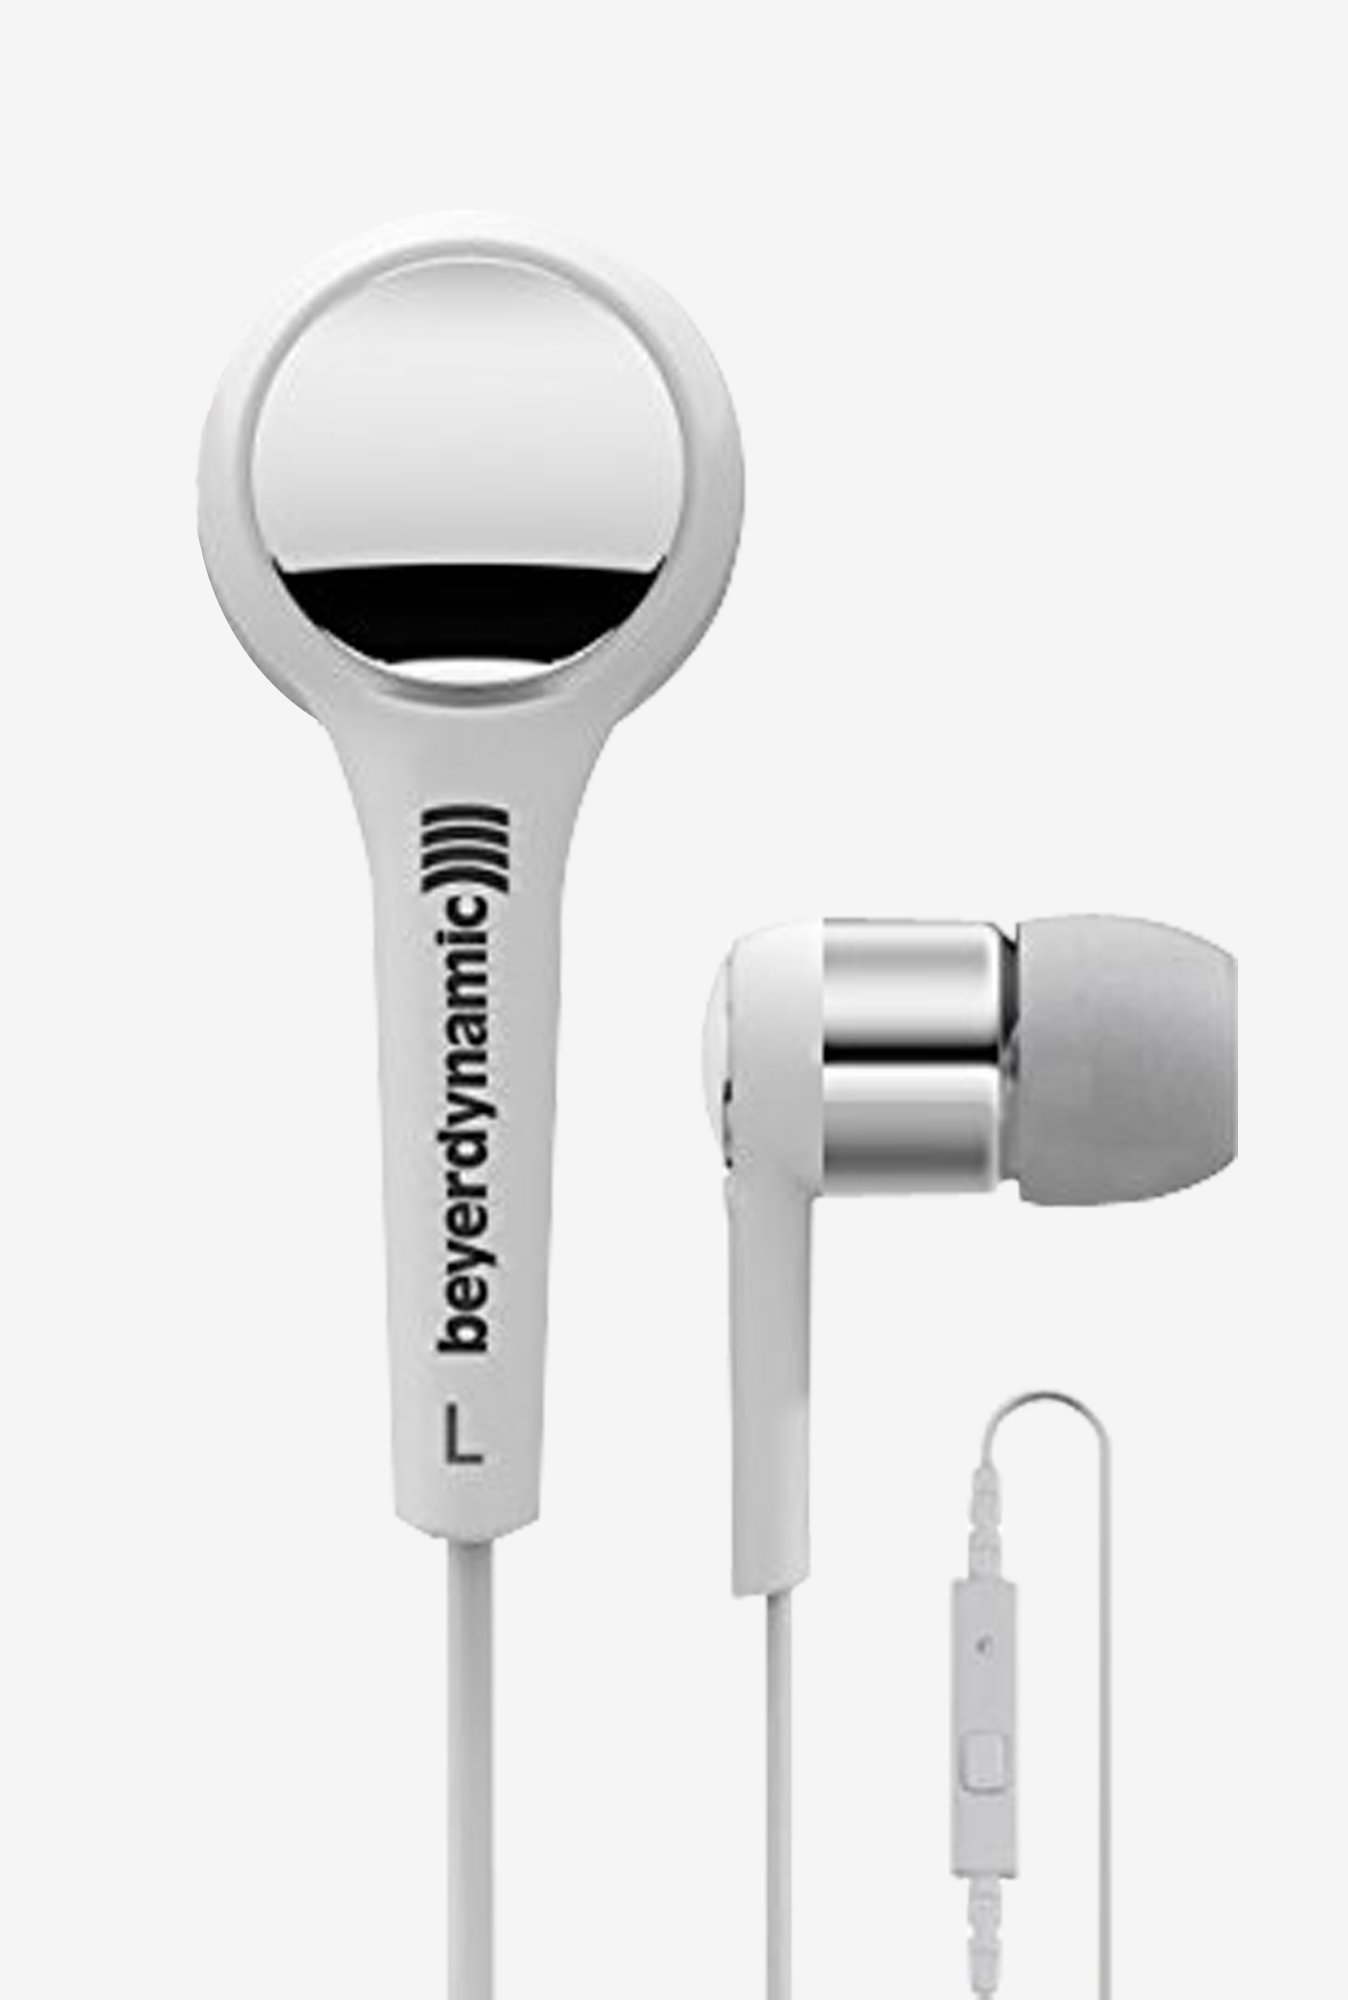 Beyerdynamic MMX 102 iE In the Ear Headphones (White/Silver)